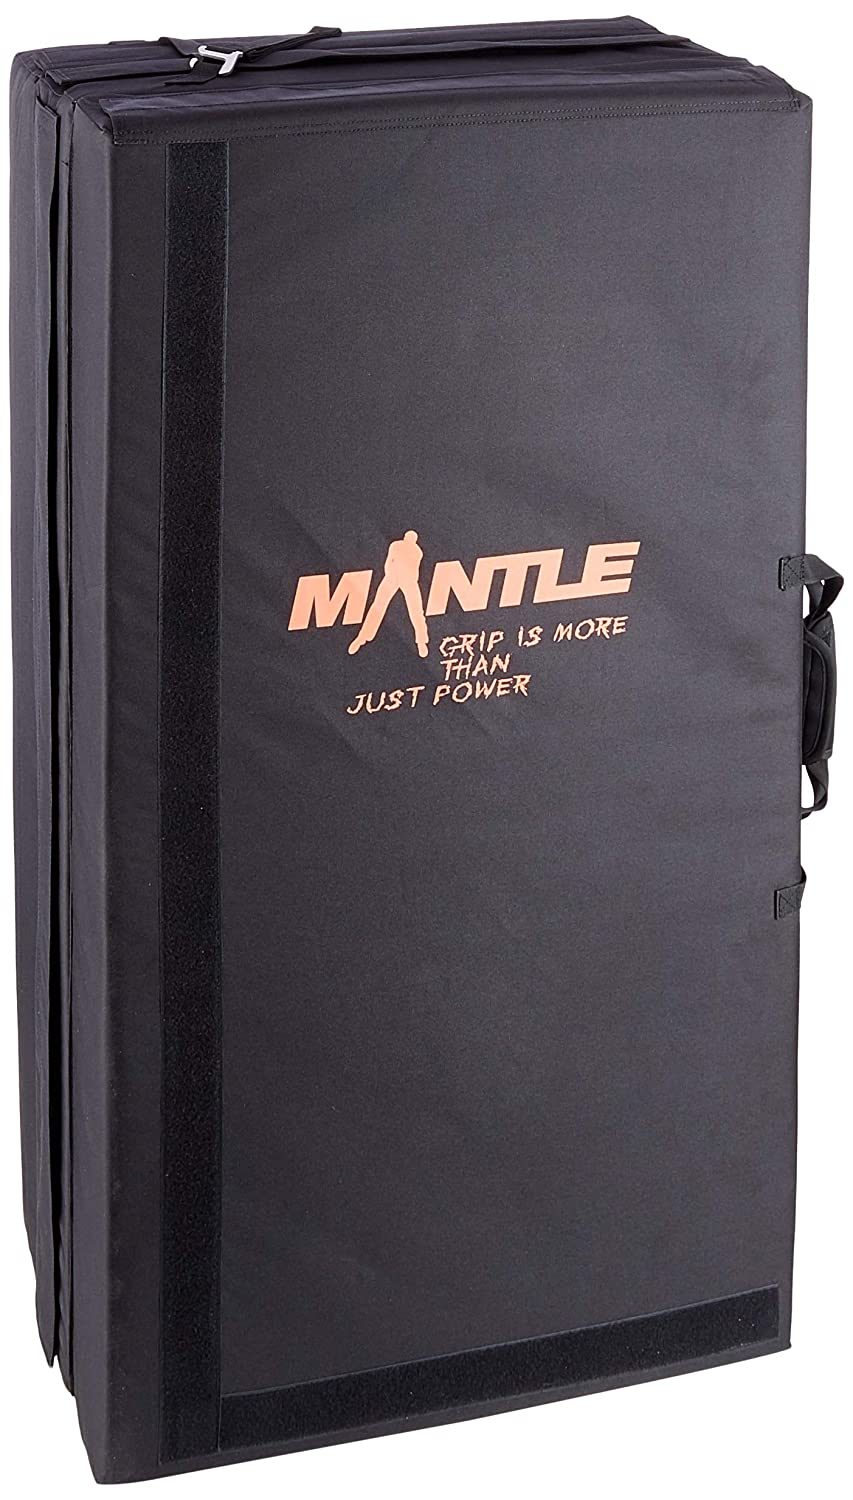 Mantle Fallschutzmatte Crash Pad - Crash Pads de Escalada